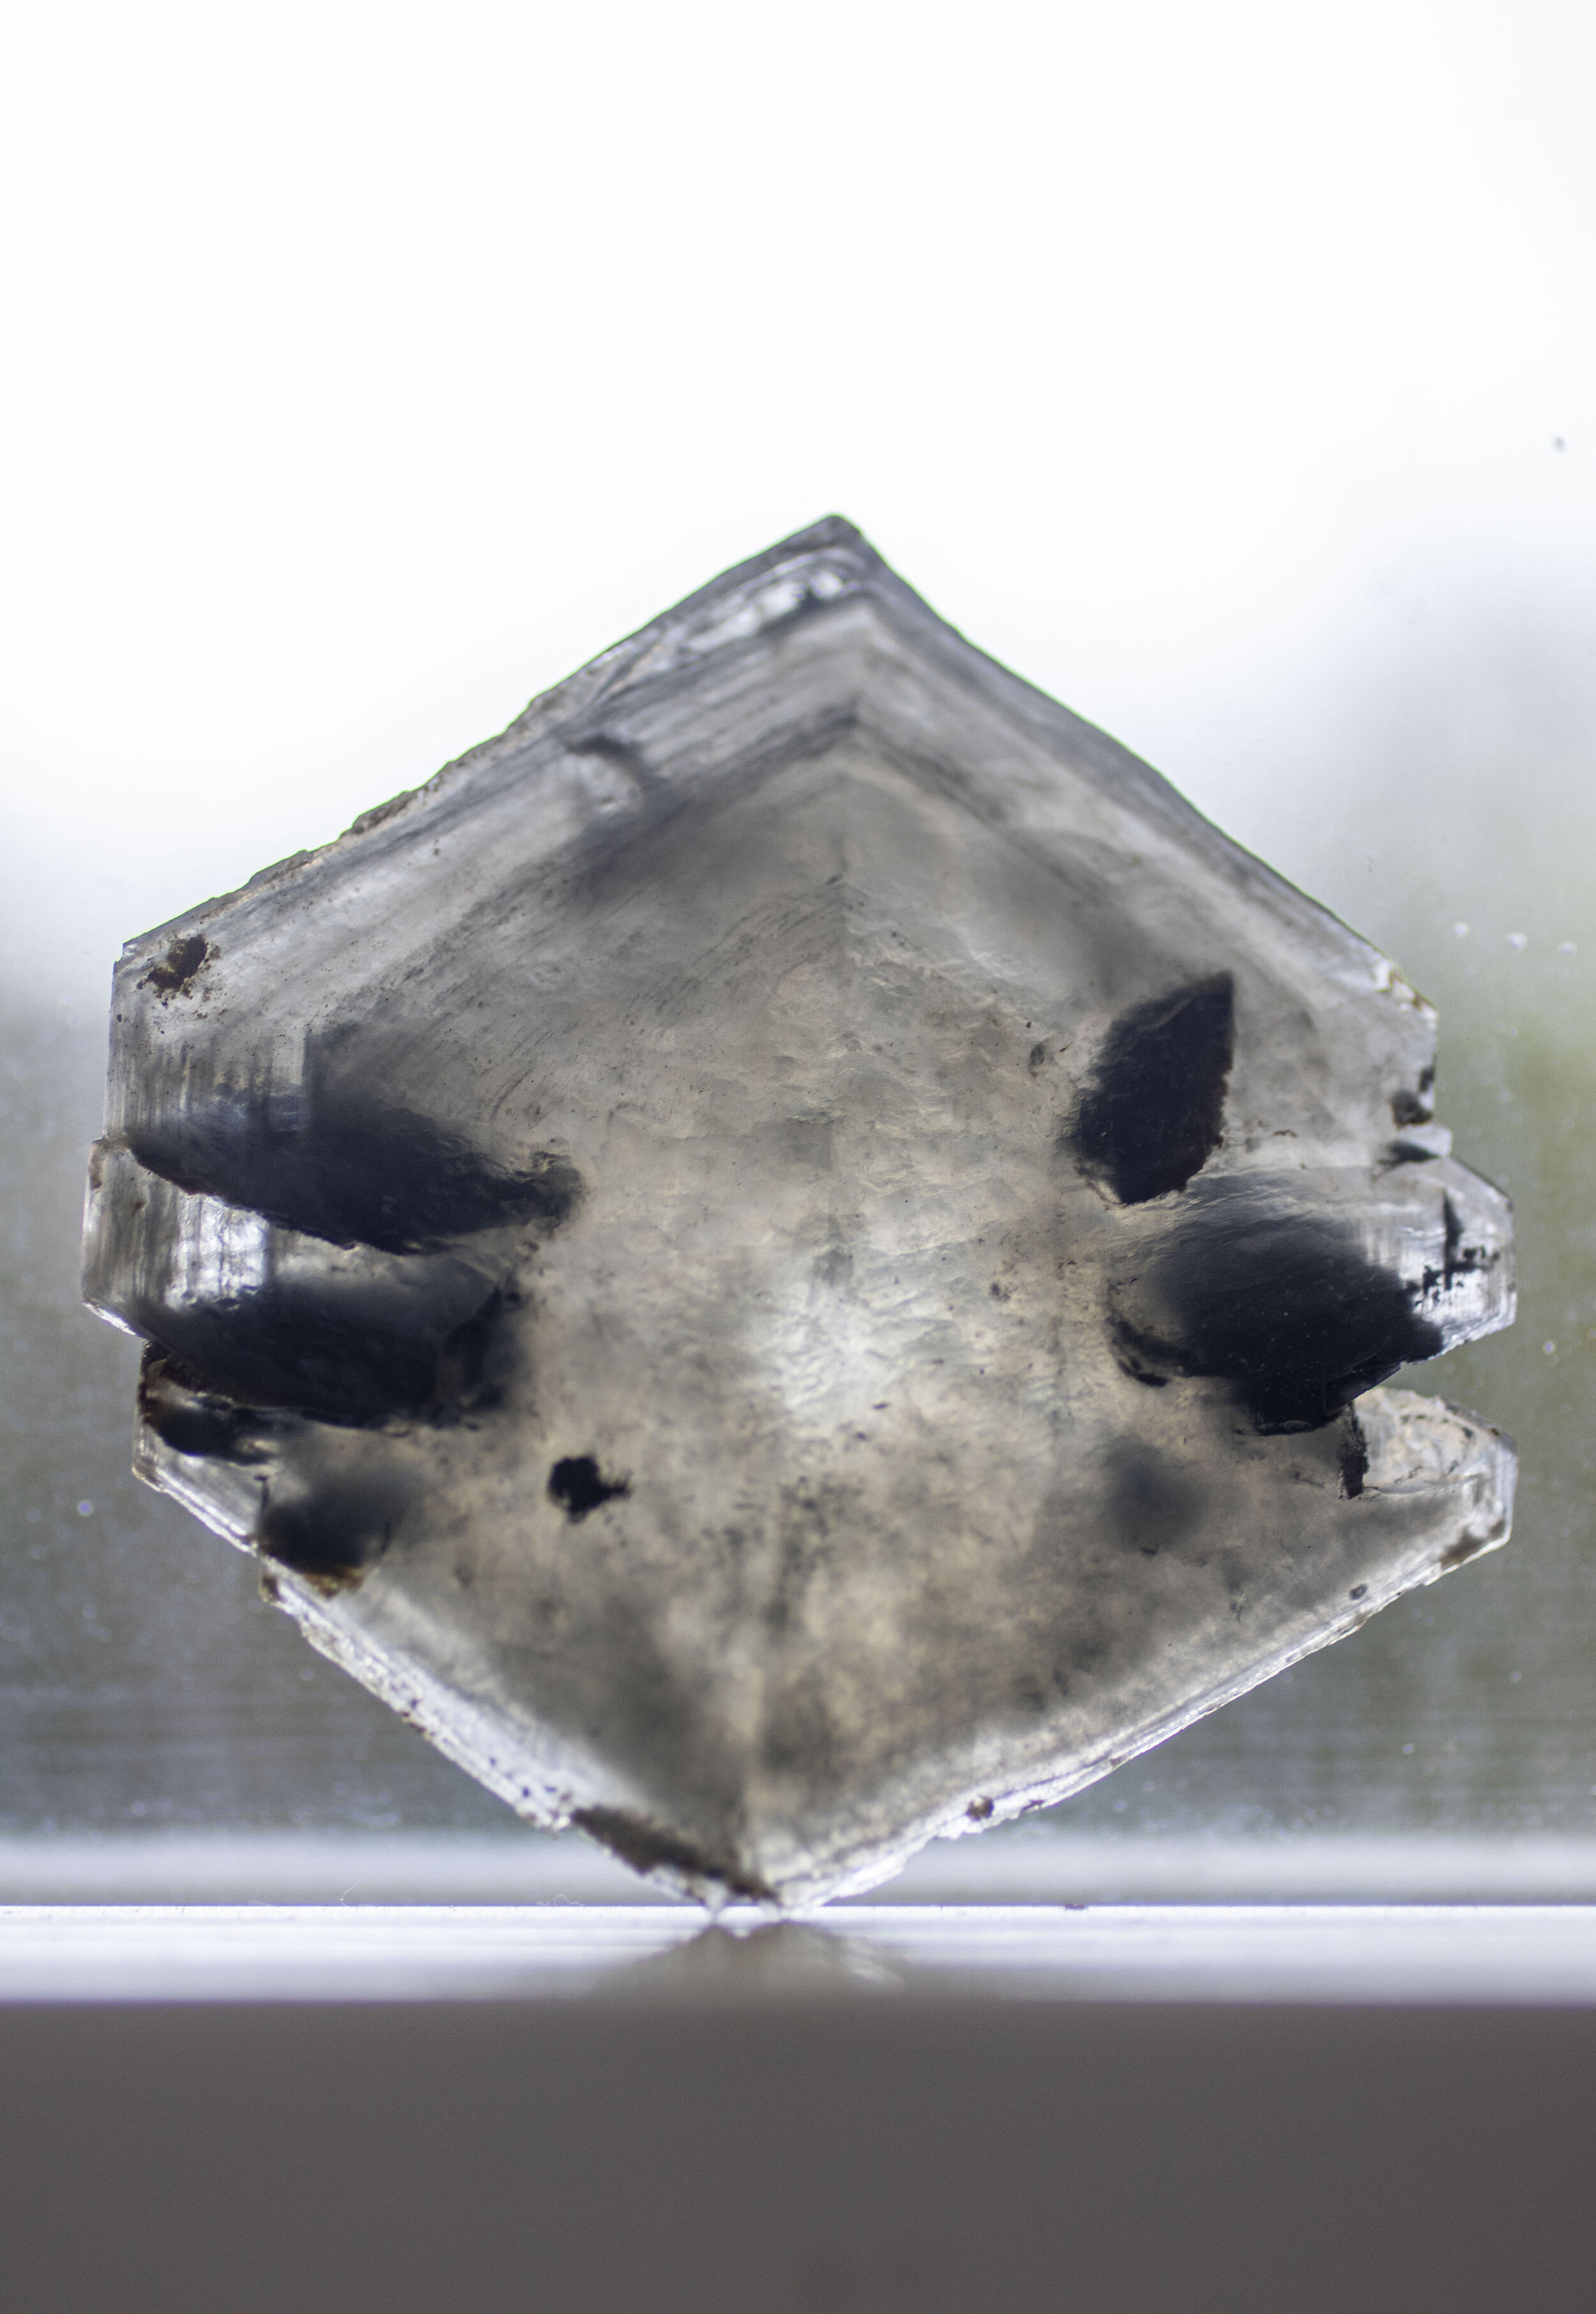 A crystal after mud removal.